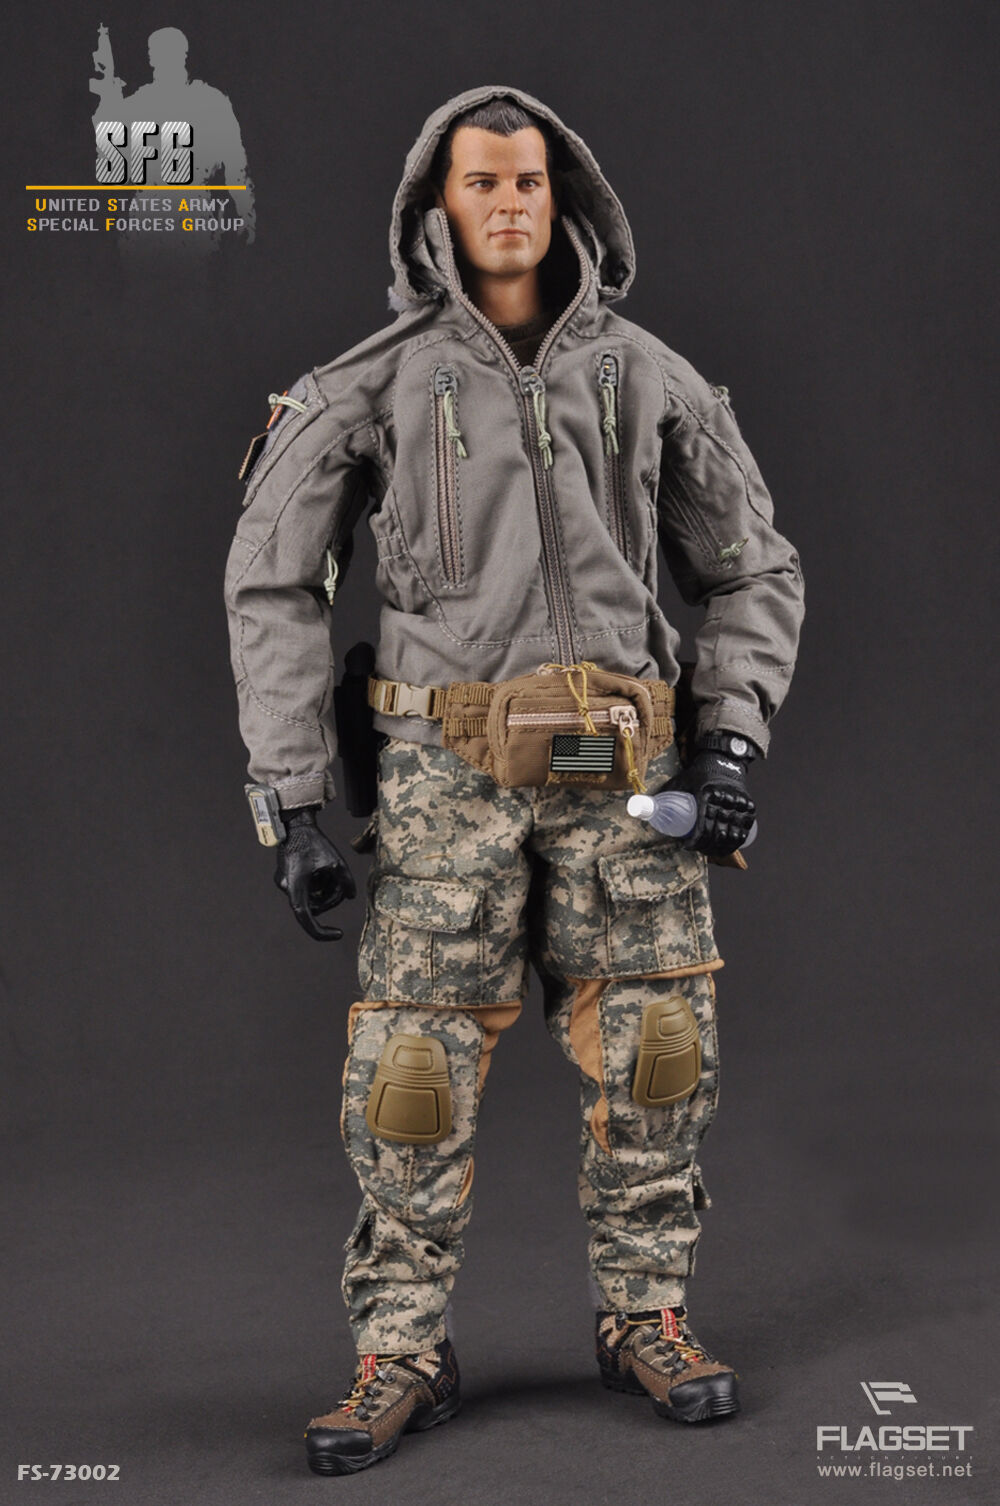 Flagset 12  1 6 Scale US Army Soldier Special Forces Group Action Figure SFG